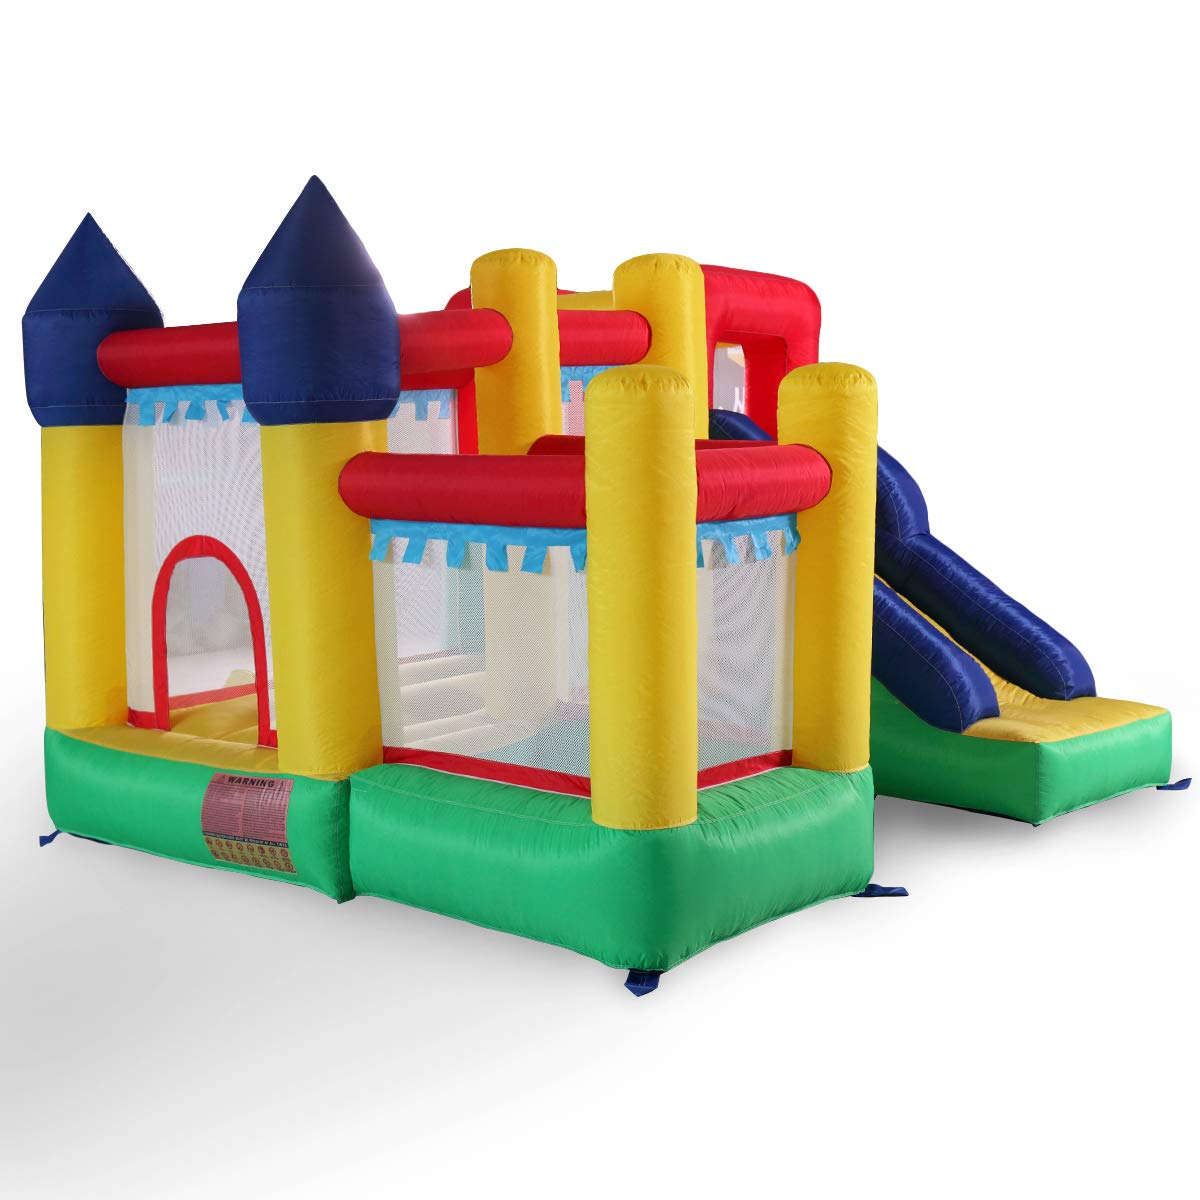 Kids Inflatable Bounce House Castle Jumper Slide Moonwalk Without Blower by BWM.Co (Image #4)